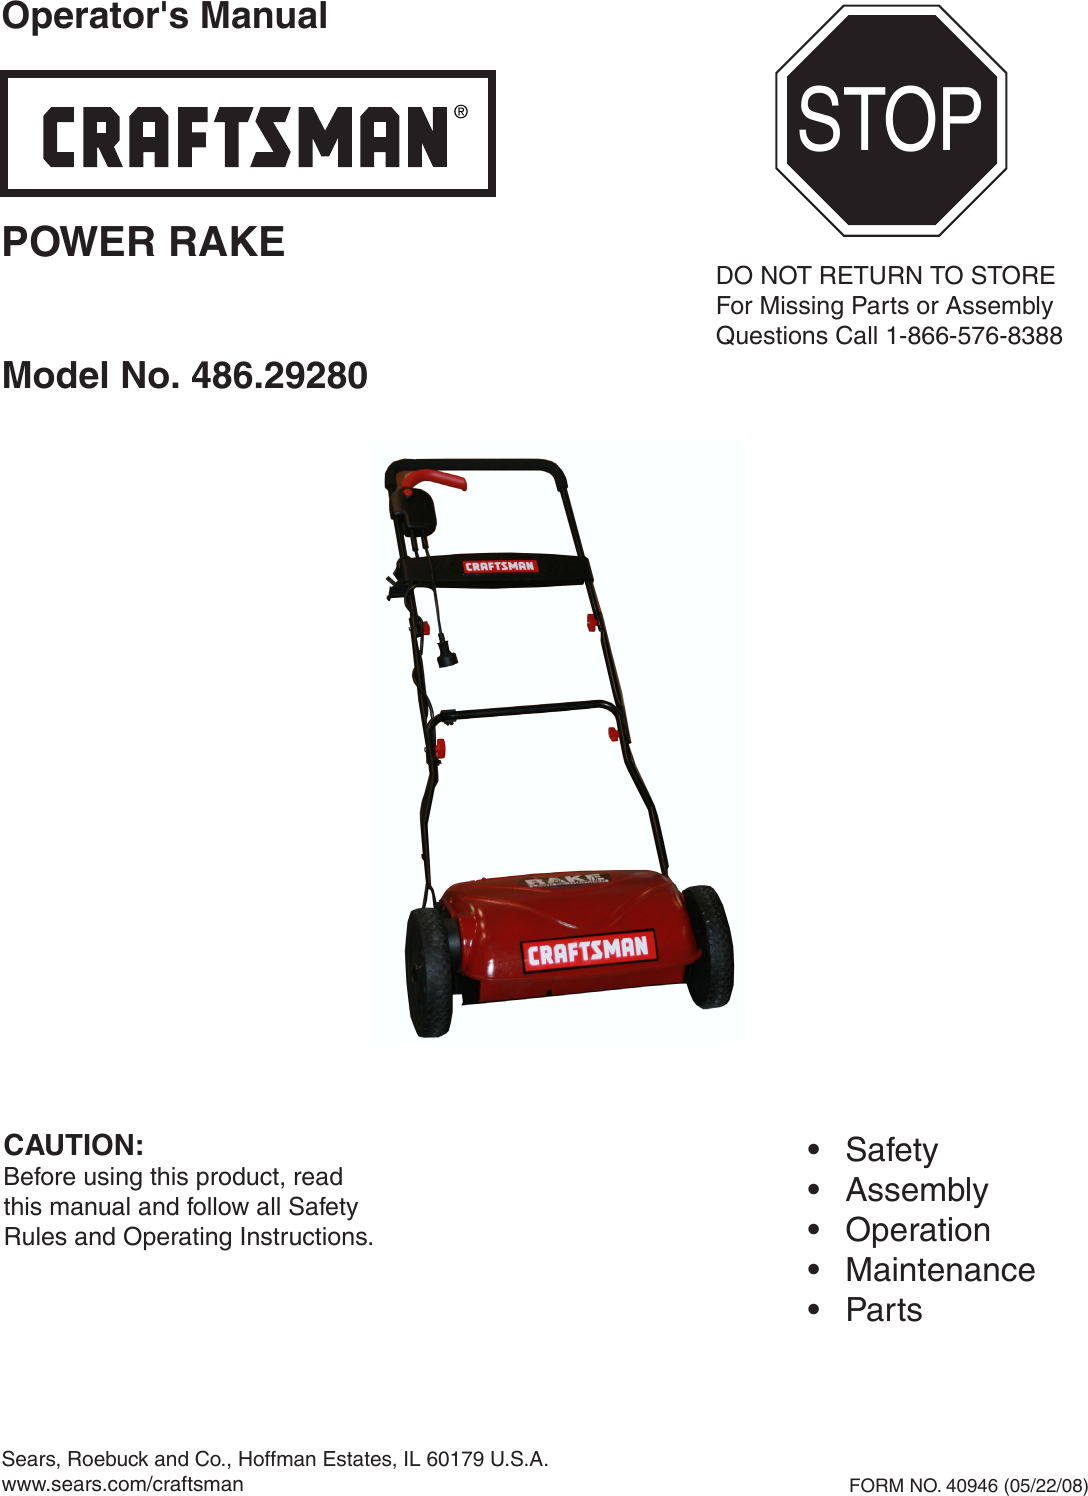 Craftsman Power Rake 486 2928 Users Manual